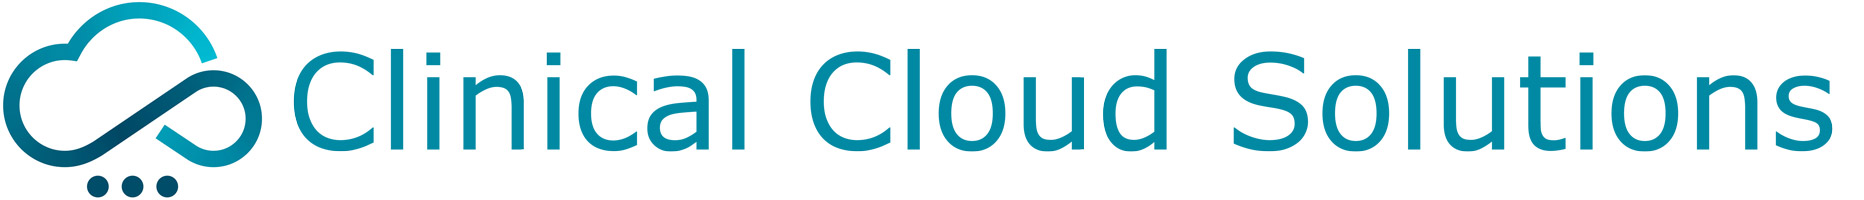 Clinical Cloud Solutions, LLC